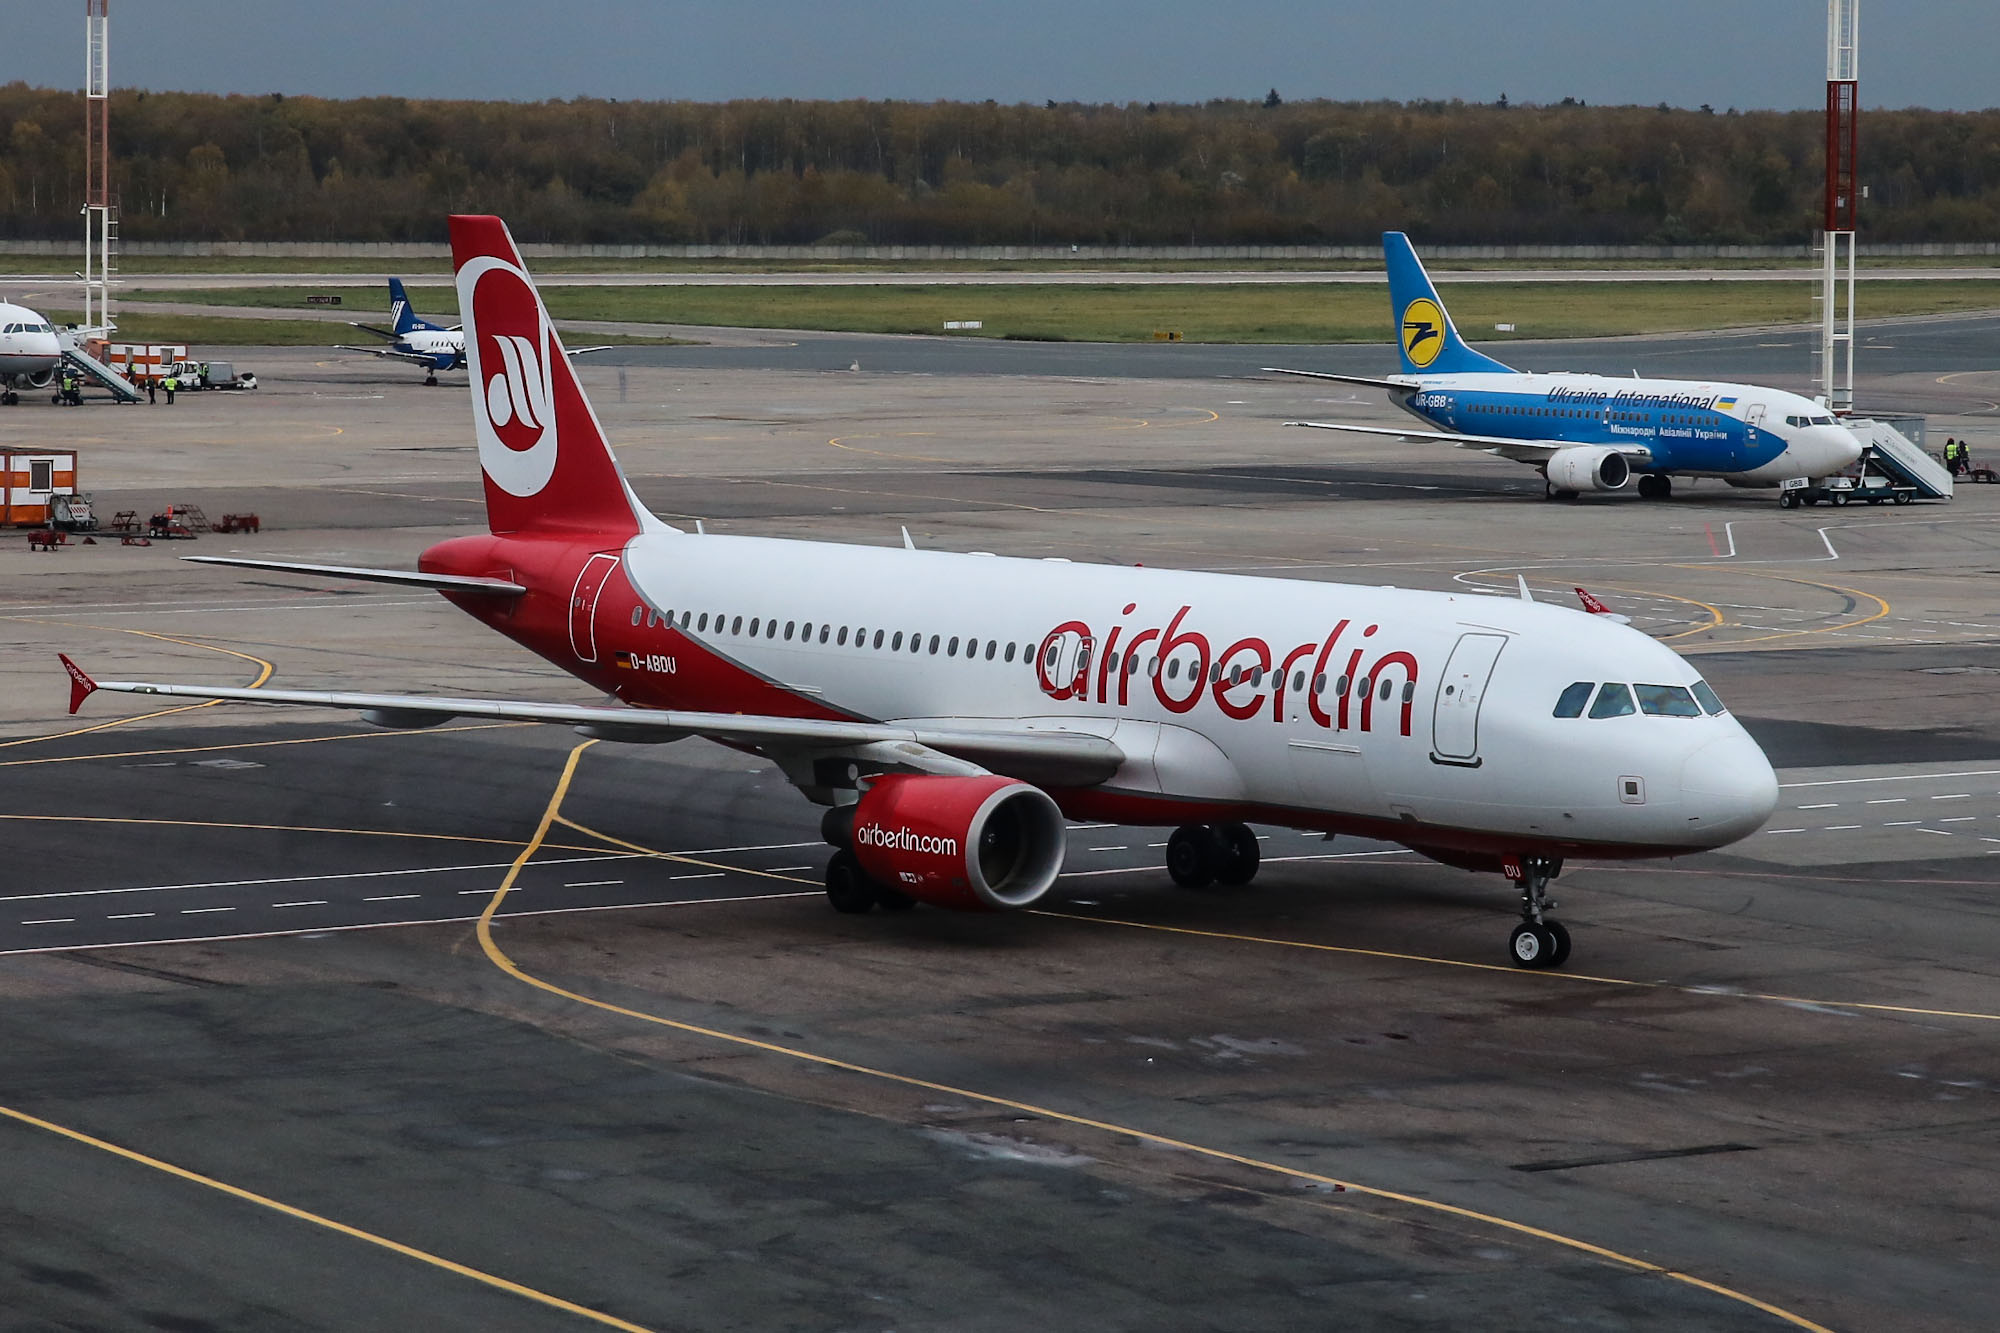 An Airbus A320 of Air Berlin at the airport Domodedovo